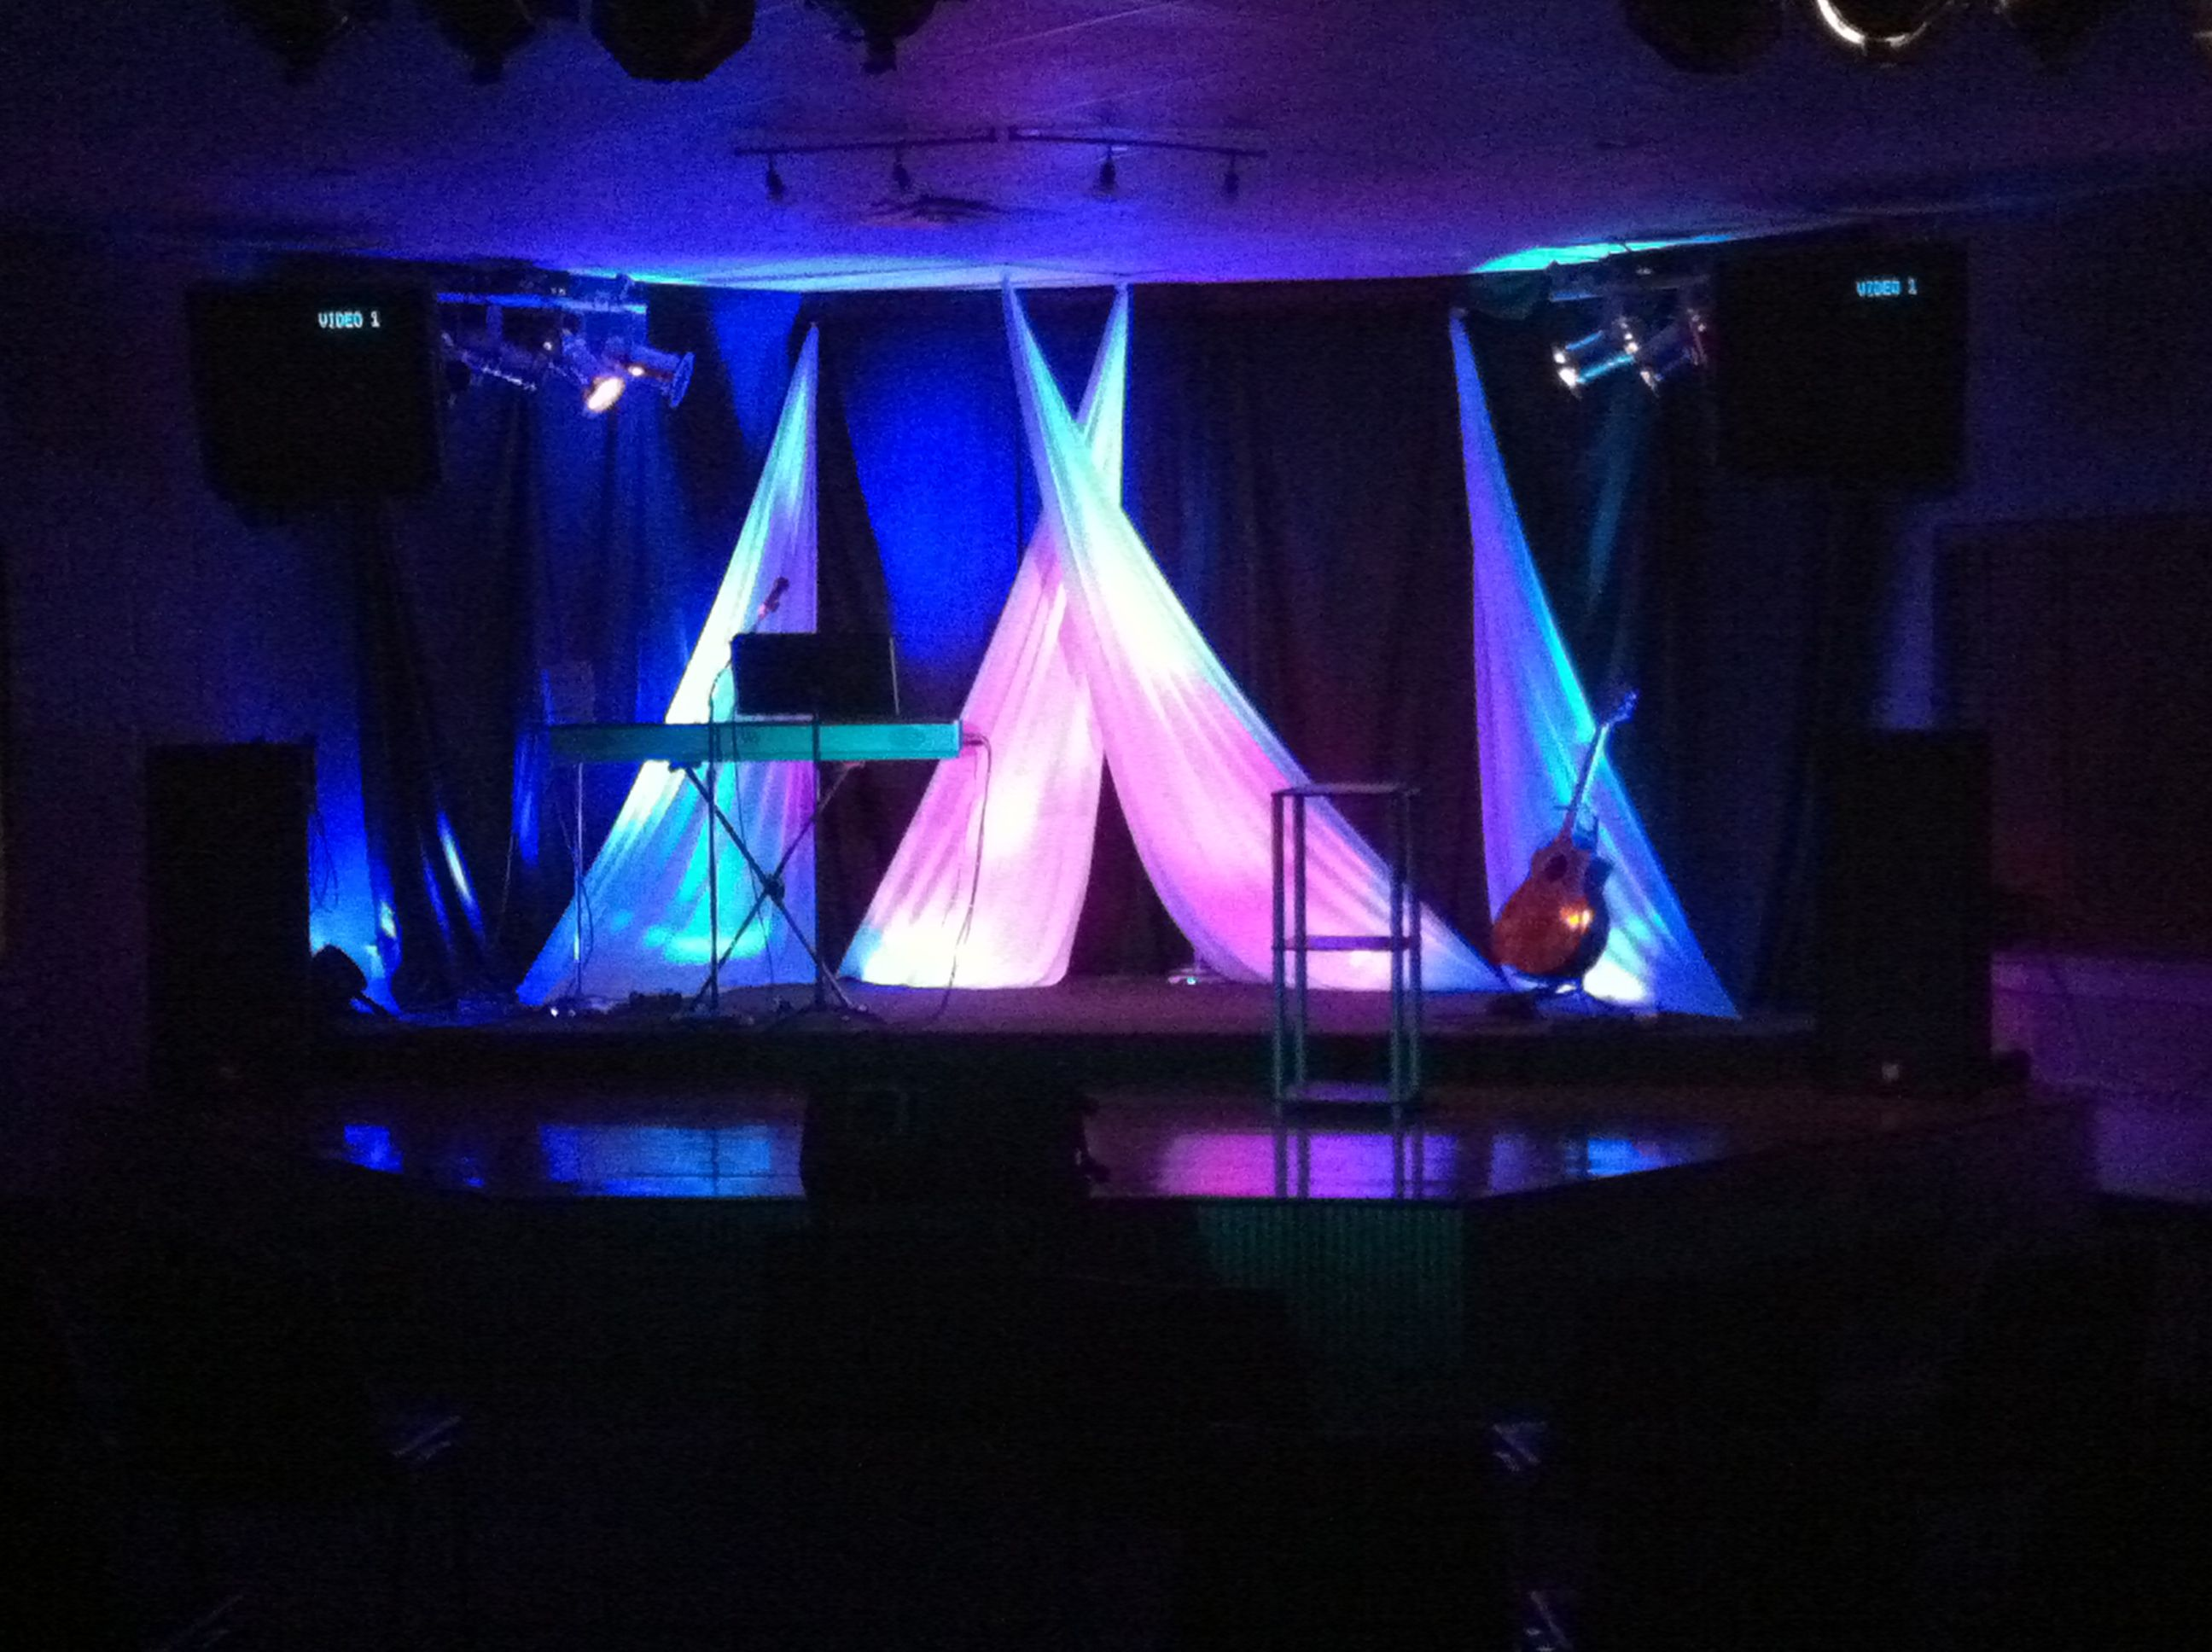 cheap church stage design ideas they pinned the other corners to the floor and hid - Small Church Stage Design Ideas